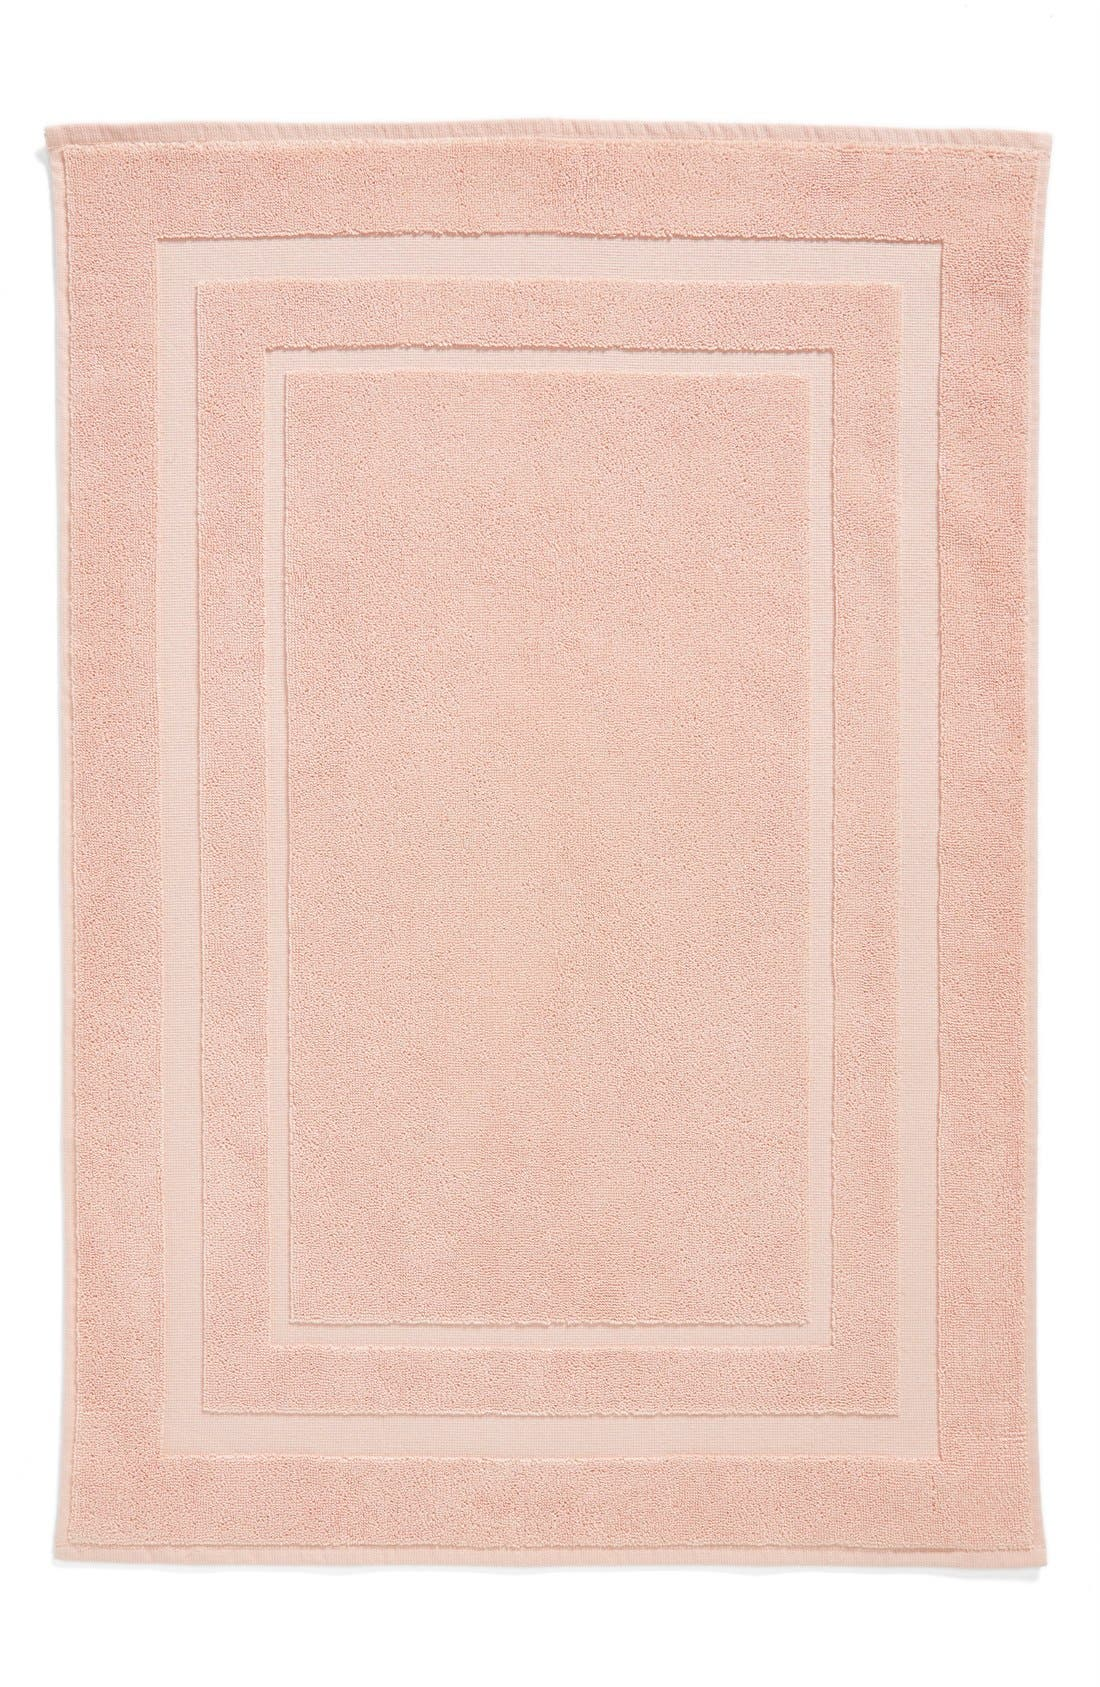 Waterworks Studio 'Perennial' Turkish Cotton Bath Mat (Online Only)